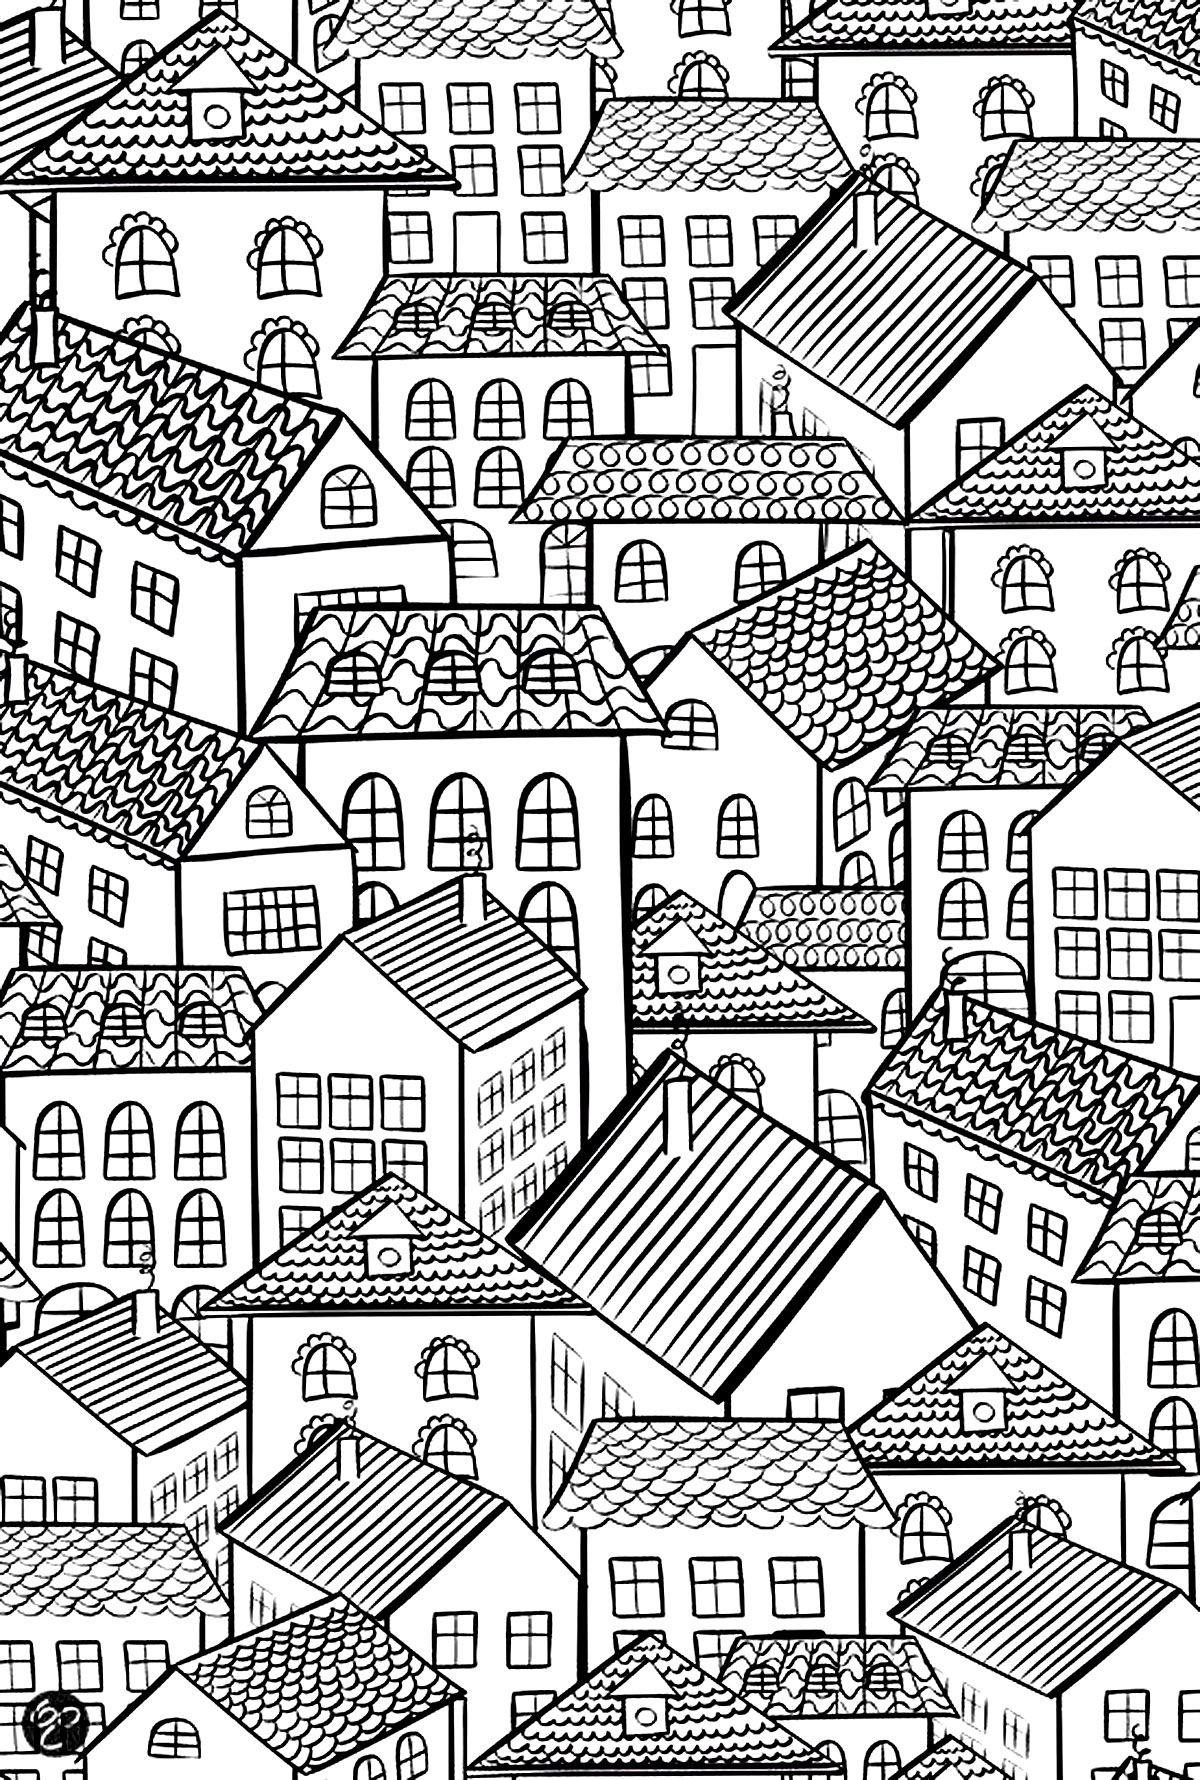 coloring house pictures house coloring pages getcoloringpagescom pictures house coloring 1 1